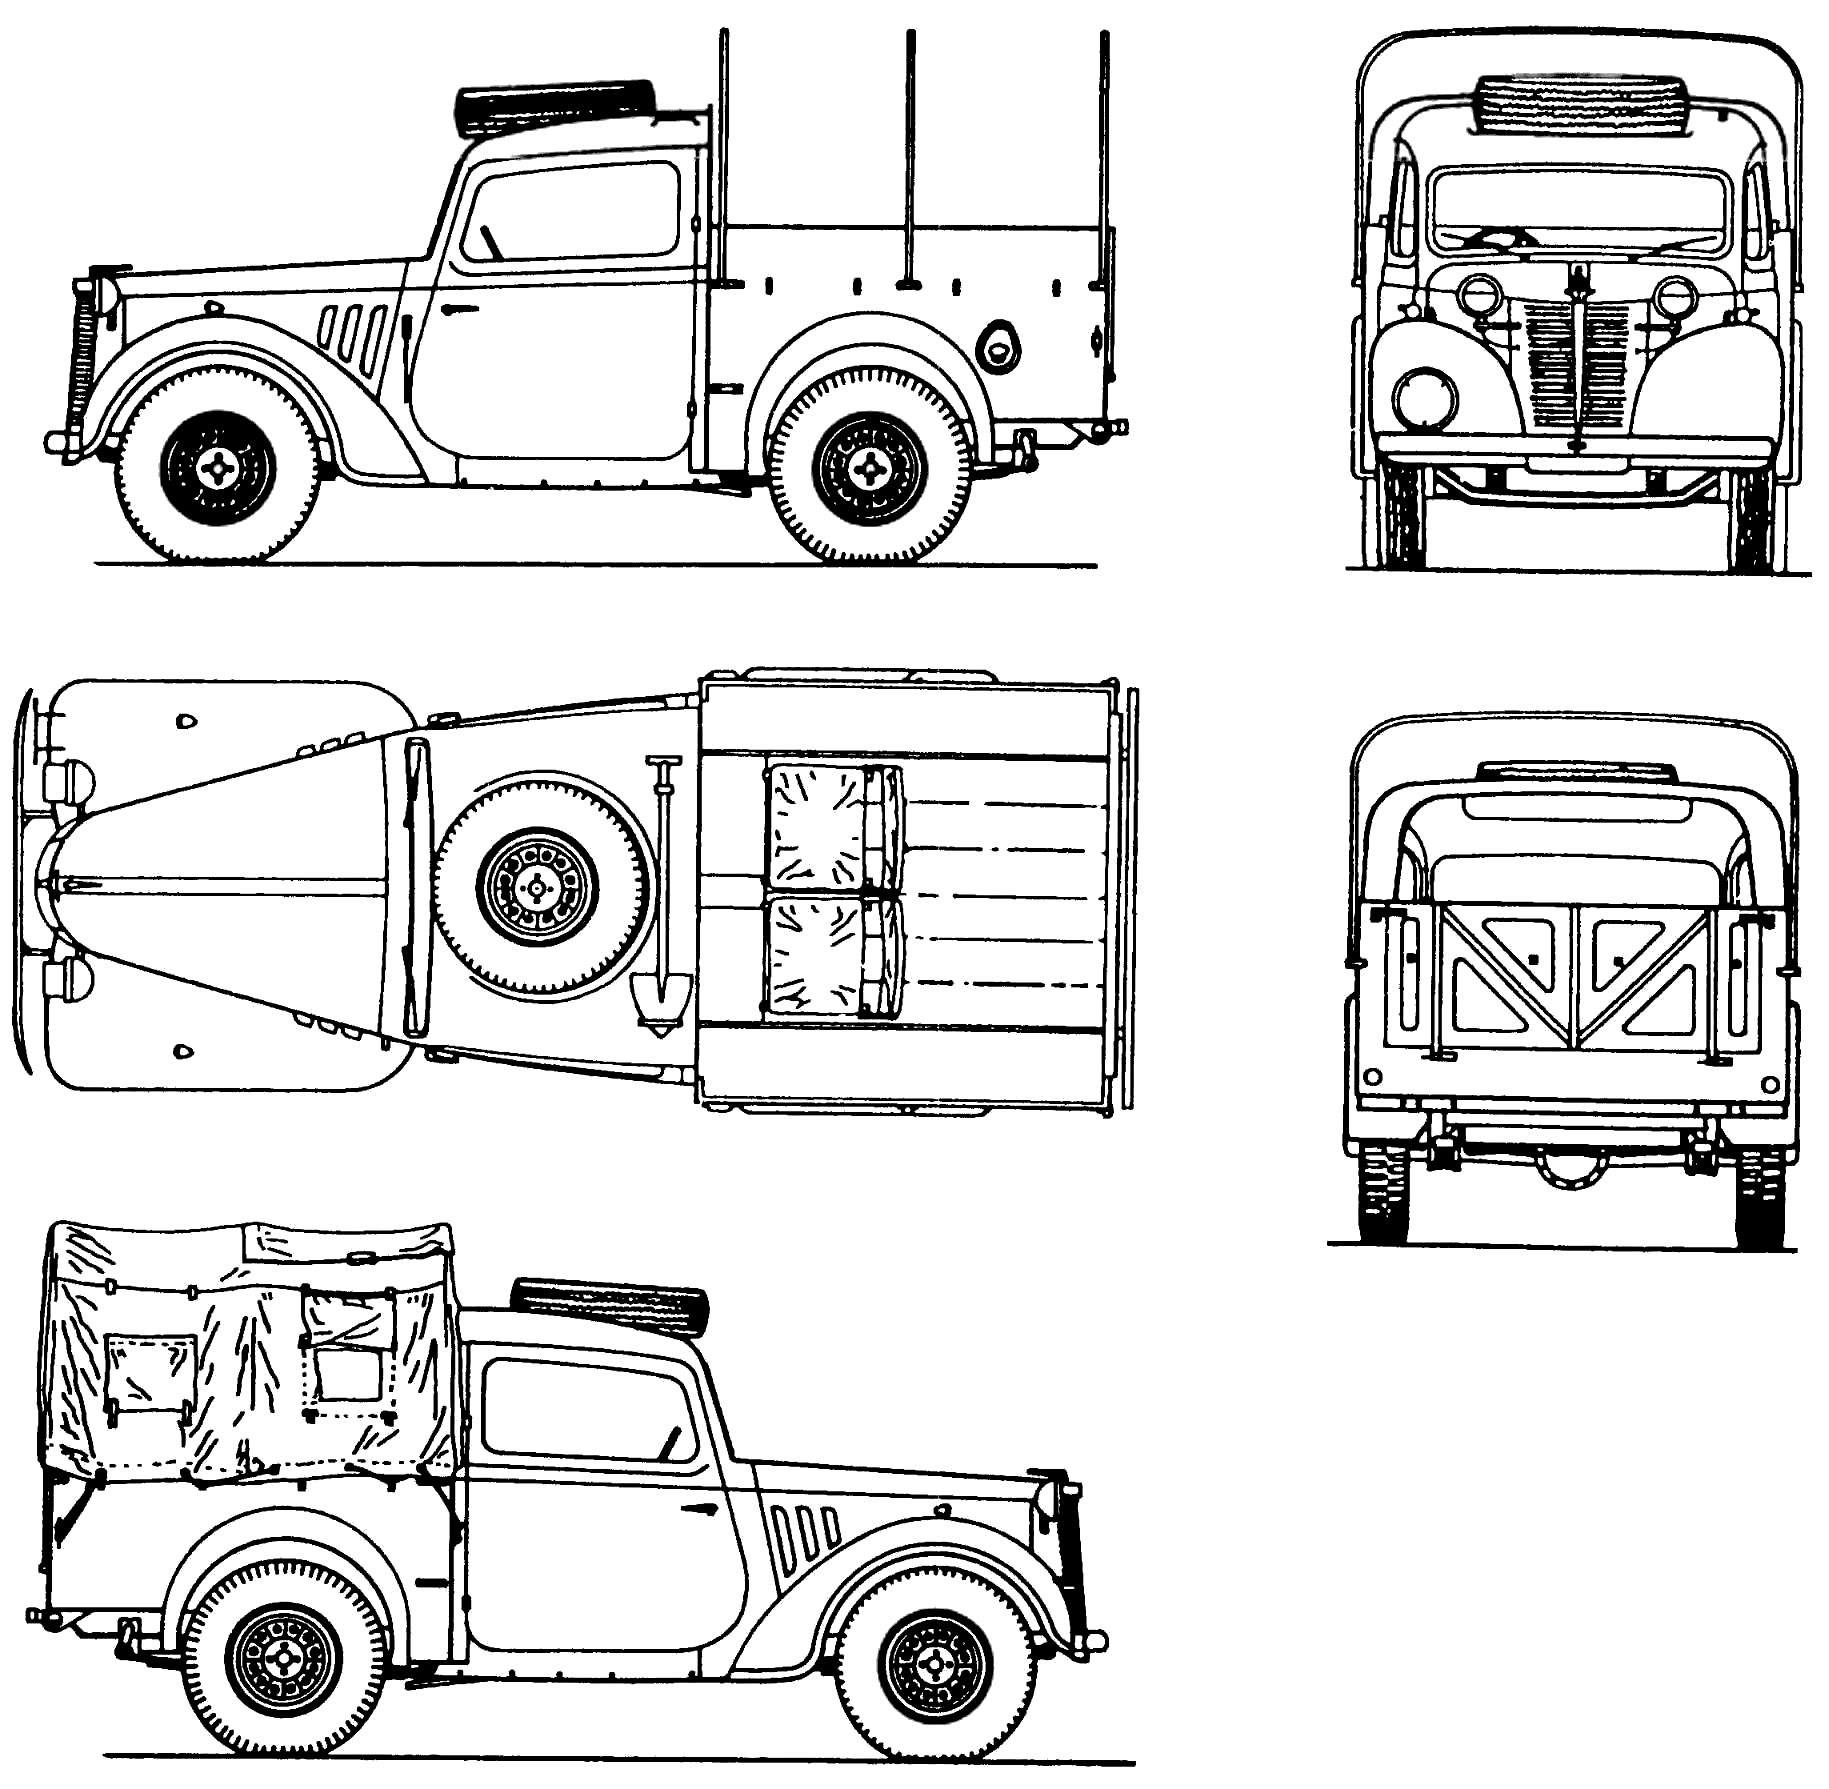 Austin 10HP blueprint